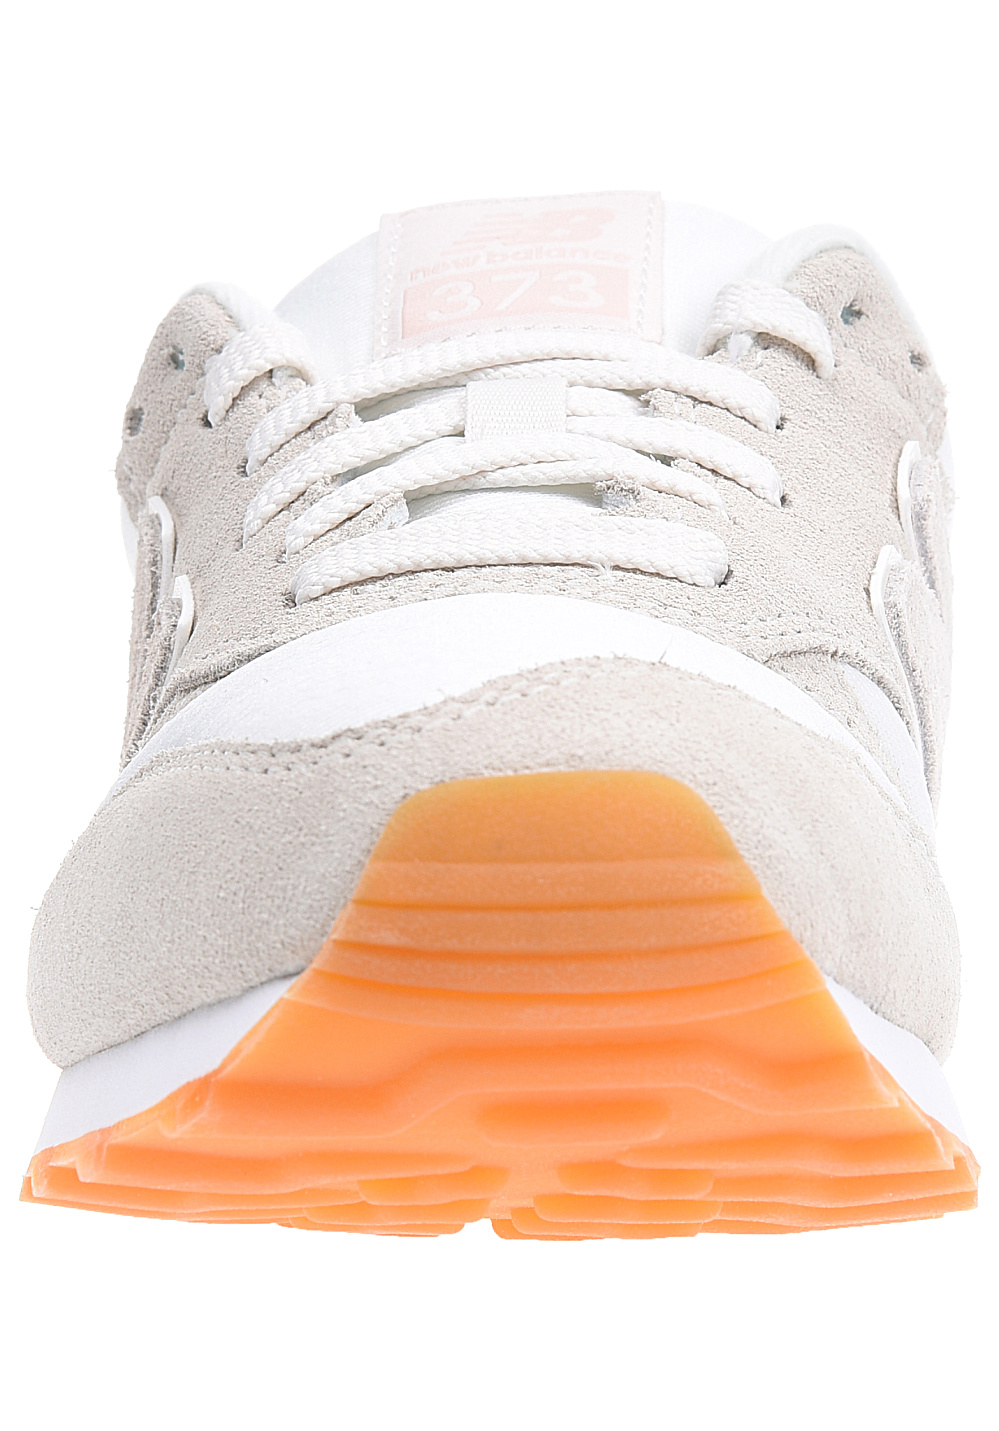 NEW BALANCE WL373 B Sneakers for Women Beige